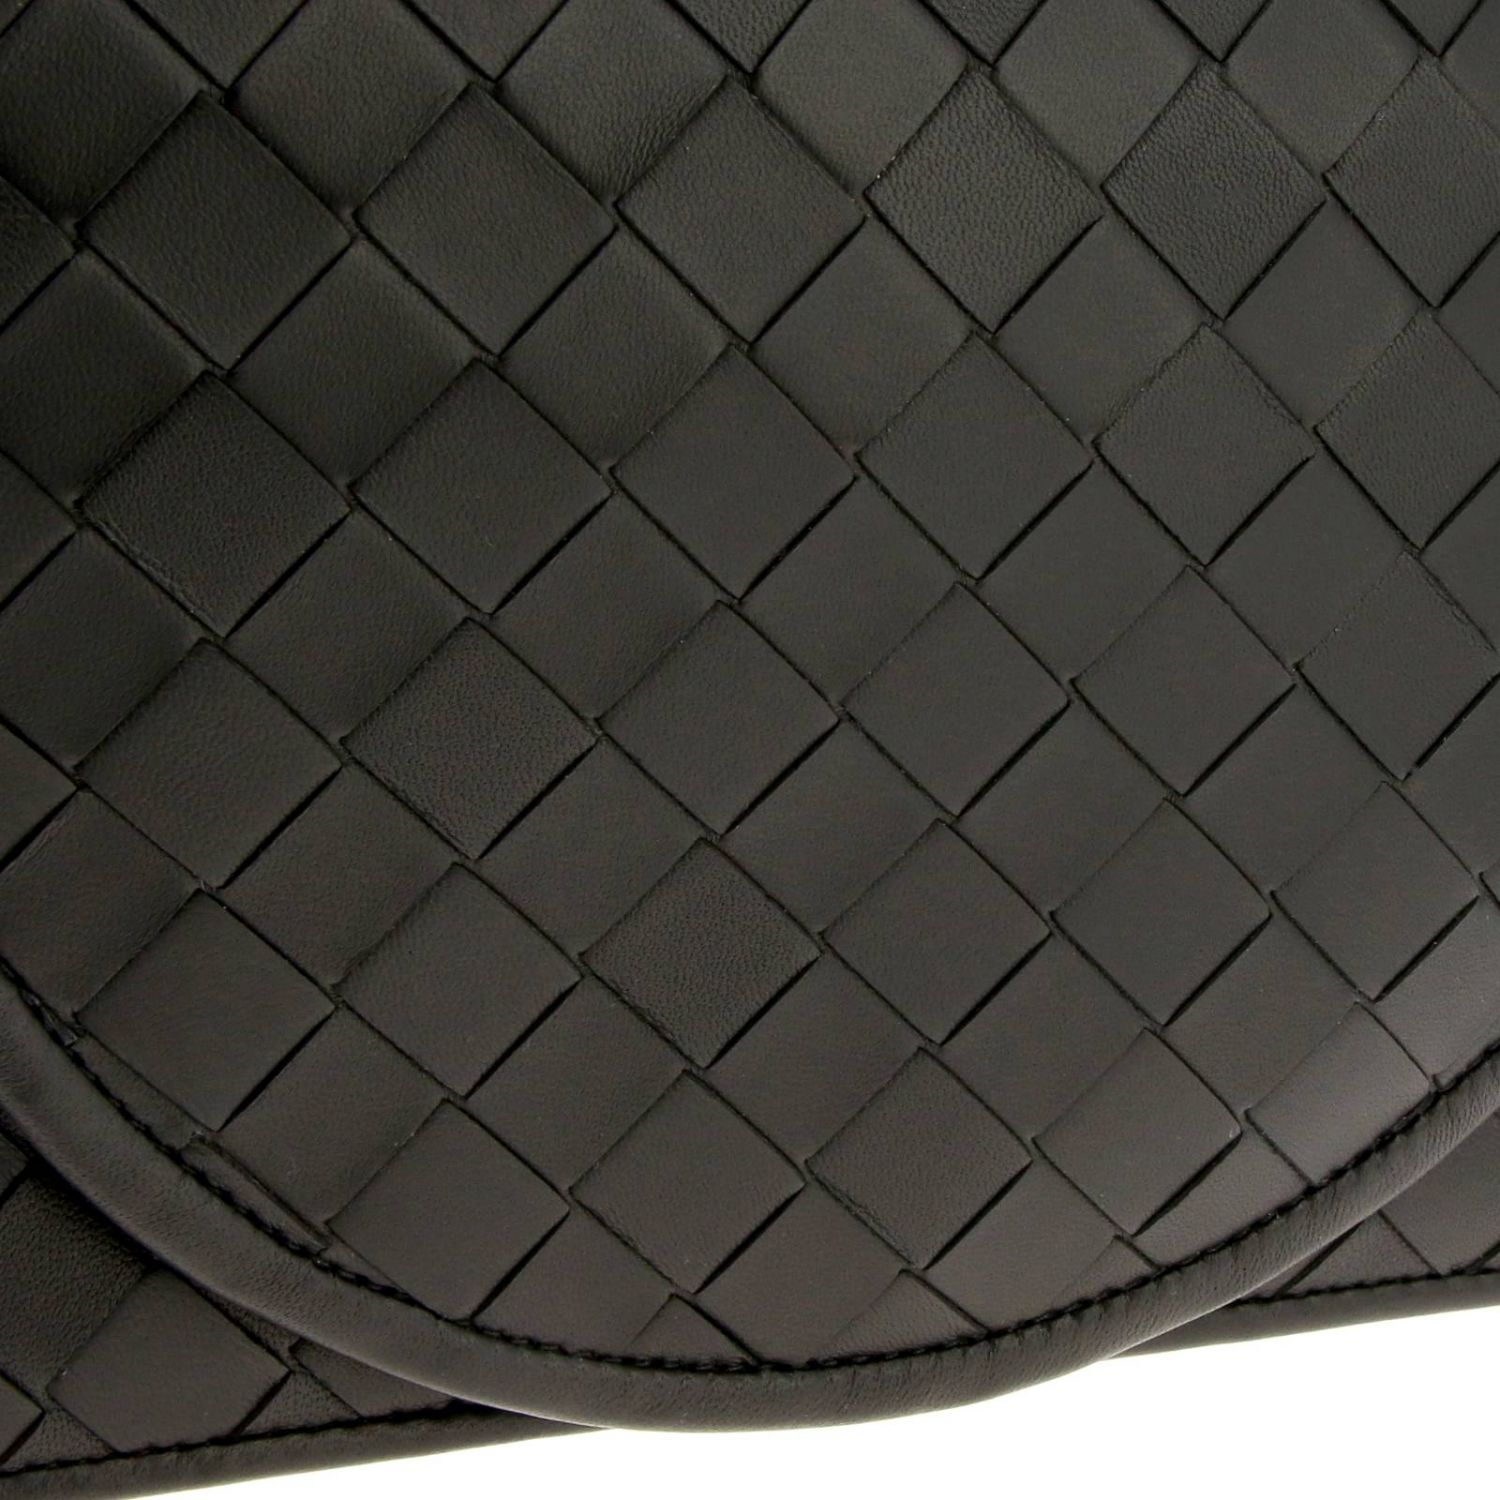 Bottega Veneta shoulder bag in leather with maxi weave black 4